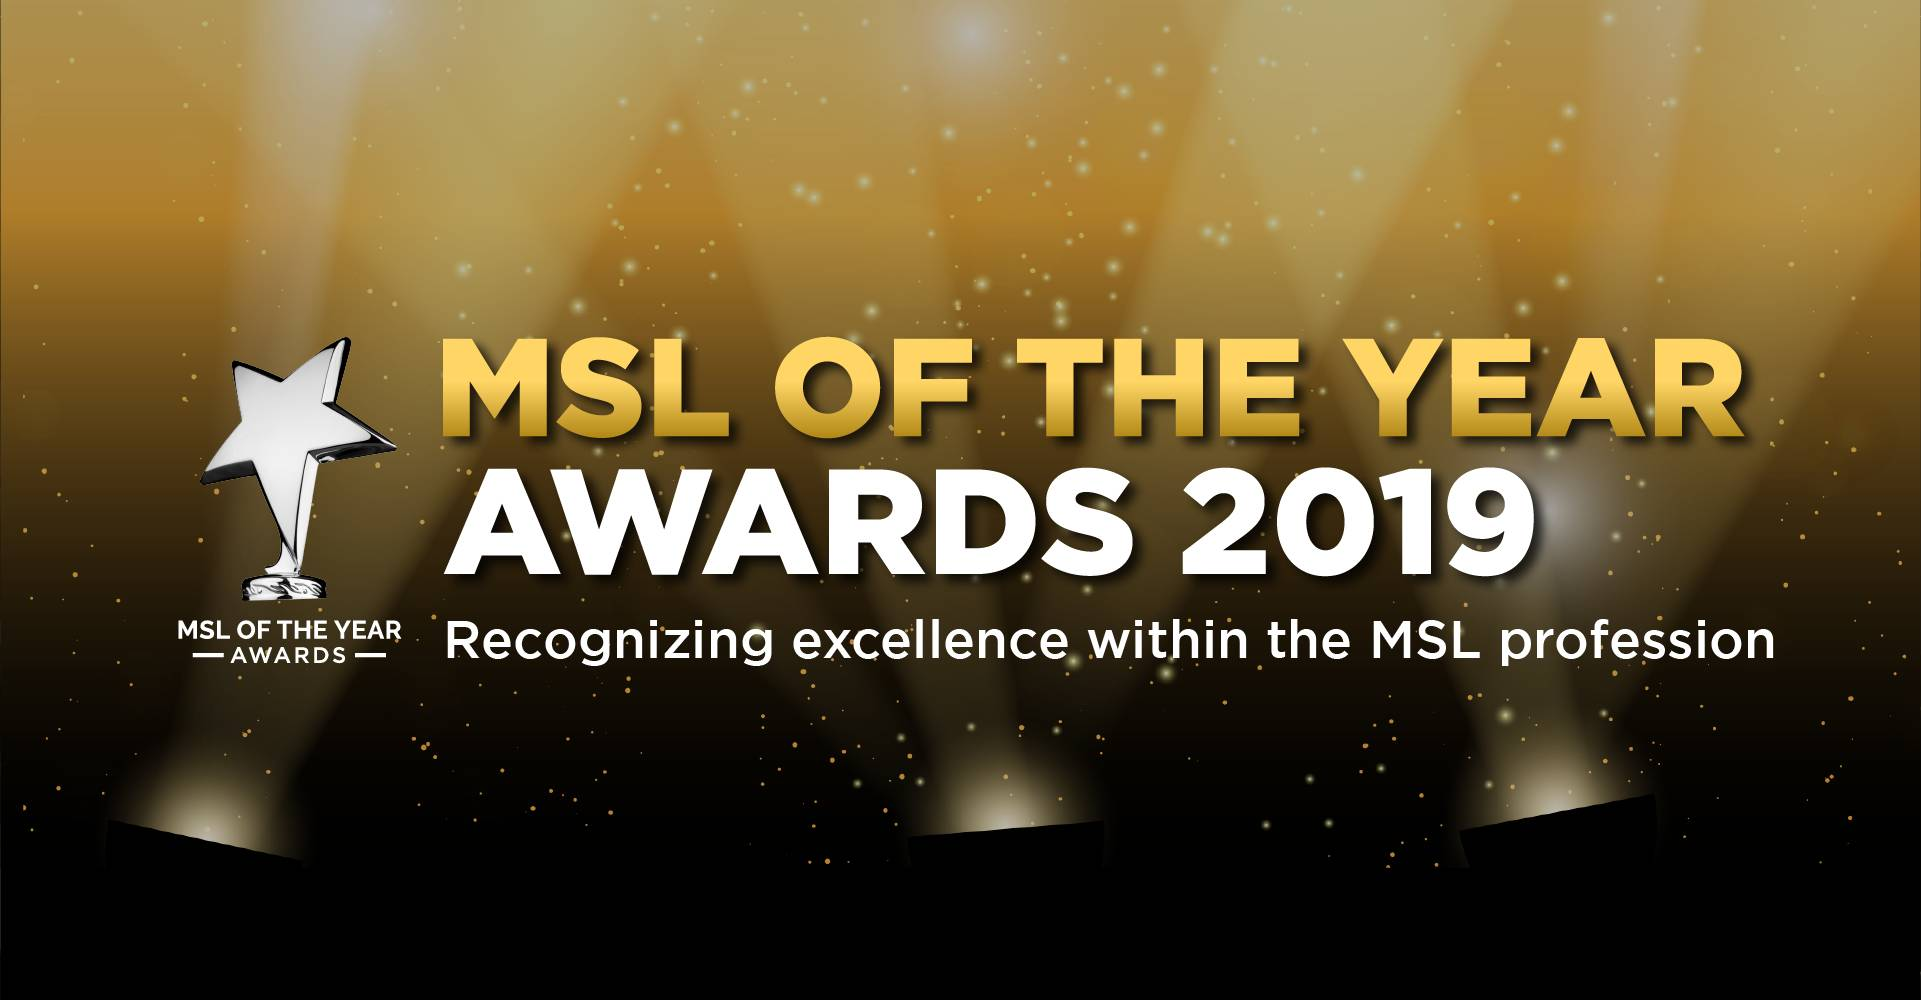 MSL of the Year Award - 2019 Las Vegas Conference